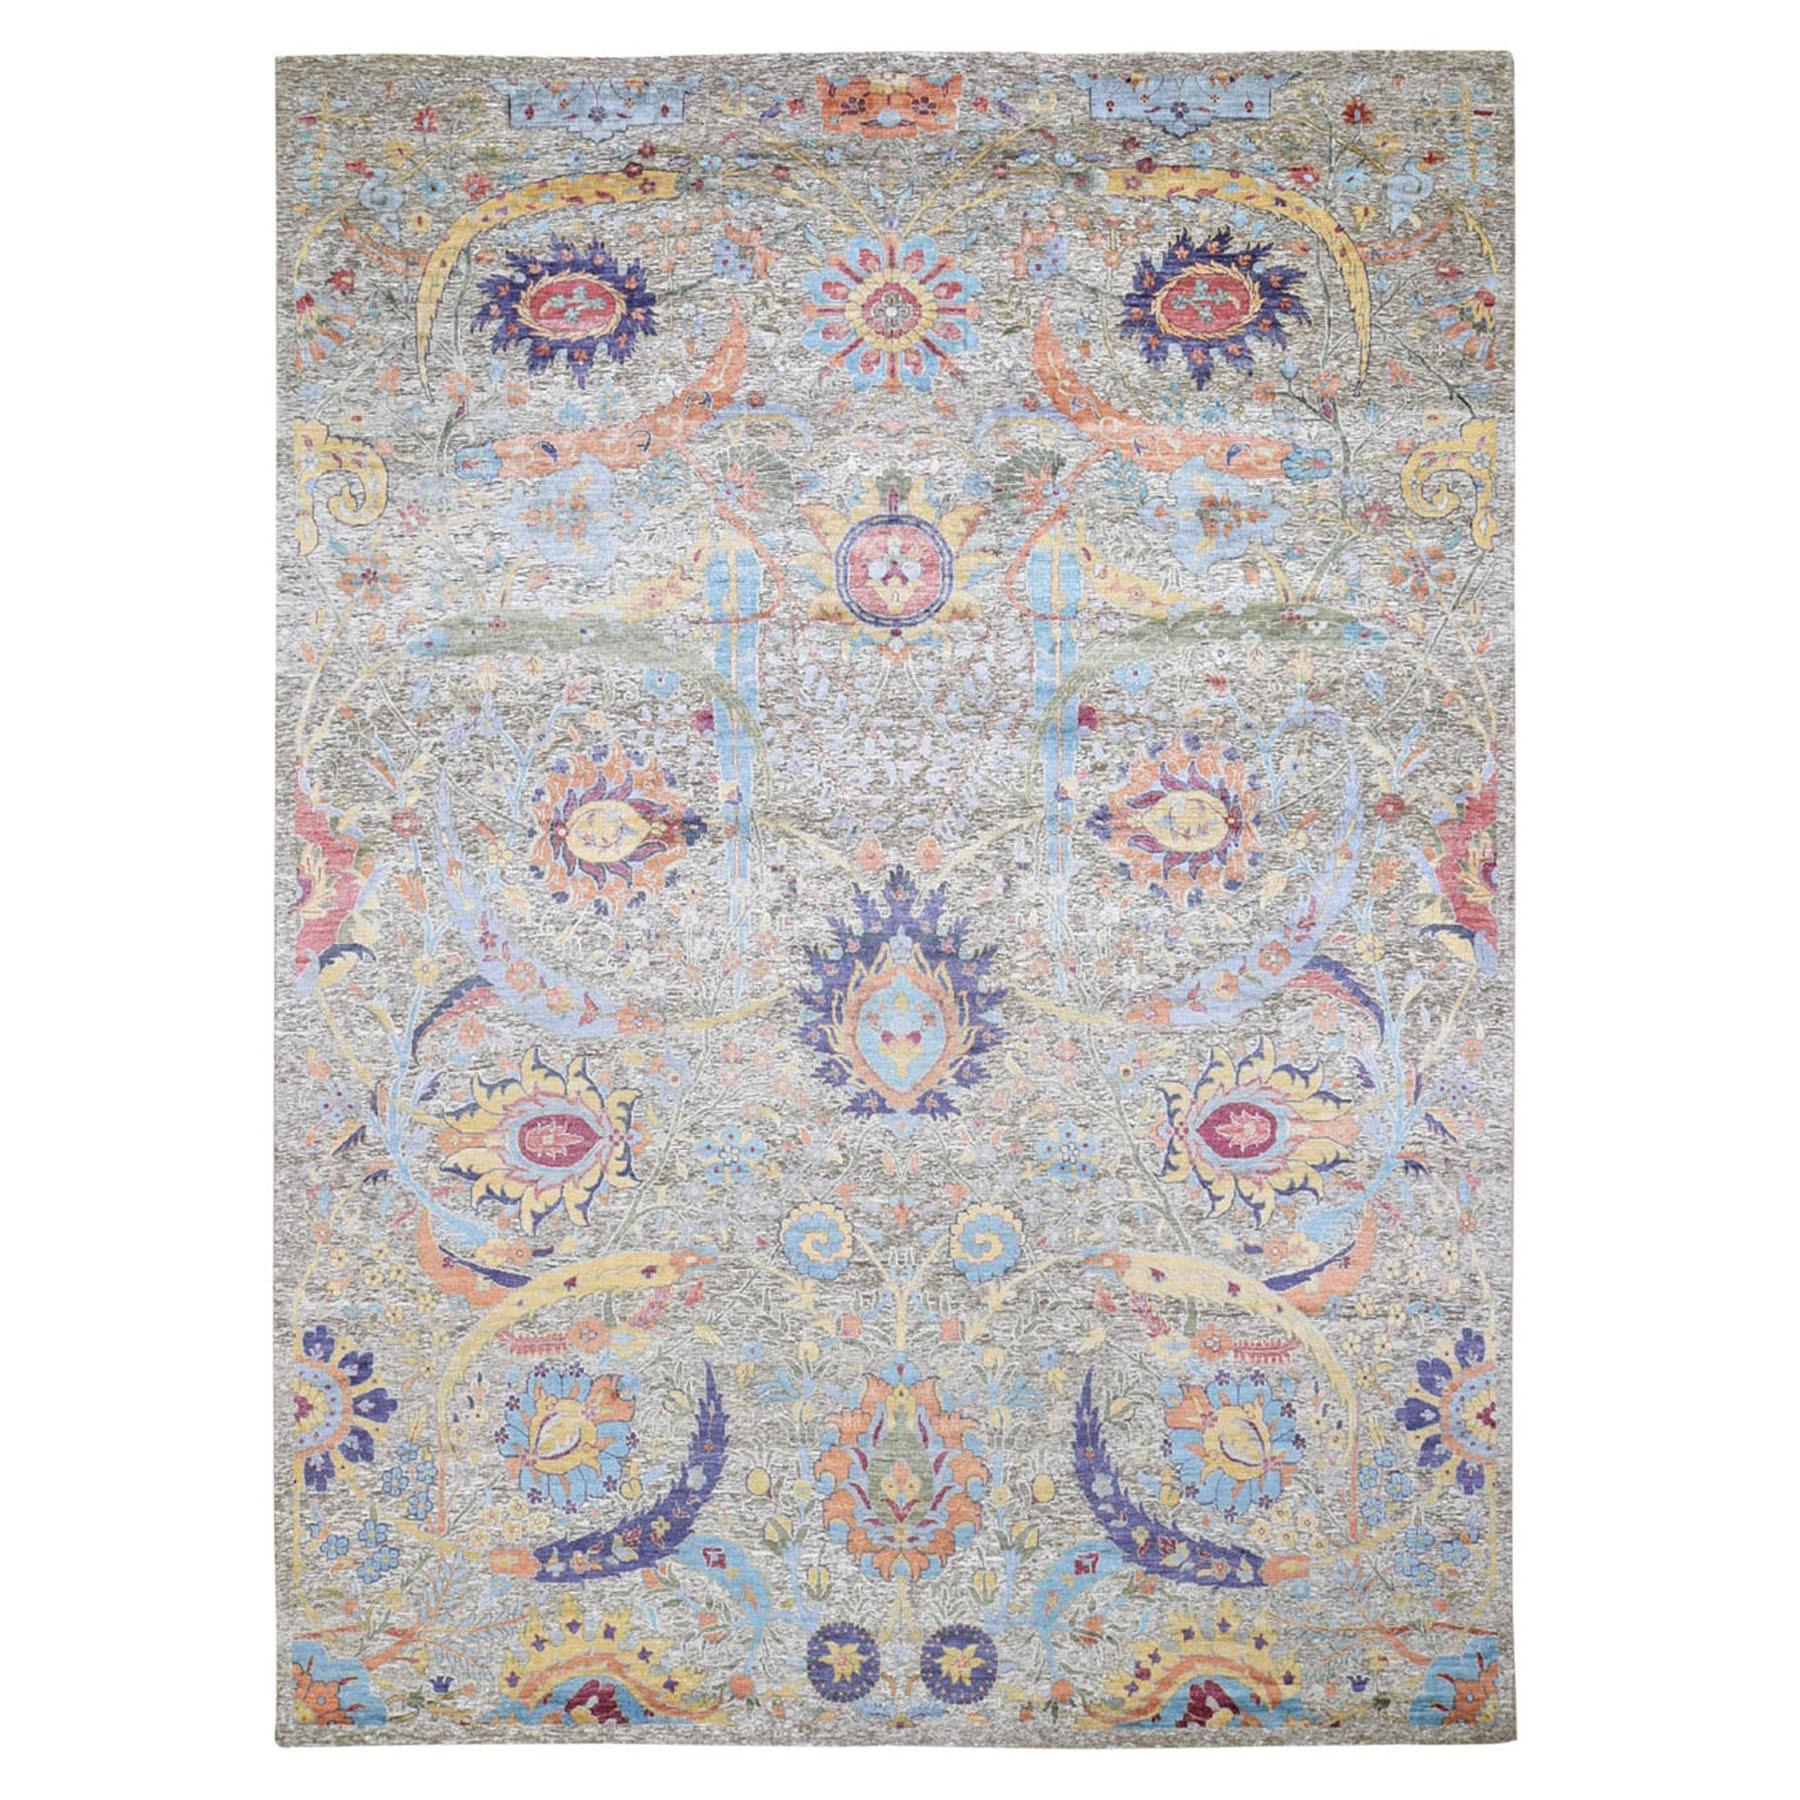 9'X12' Sickle Leaf Design Silk With Textured Wool Hand Knotted Oriental Rug moad9d08